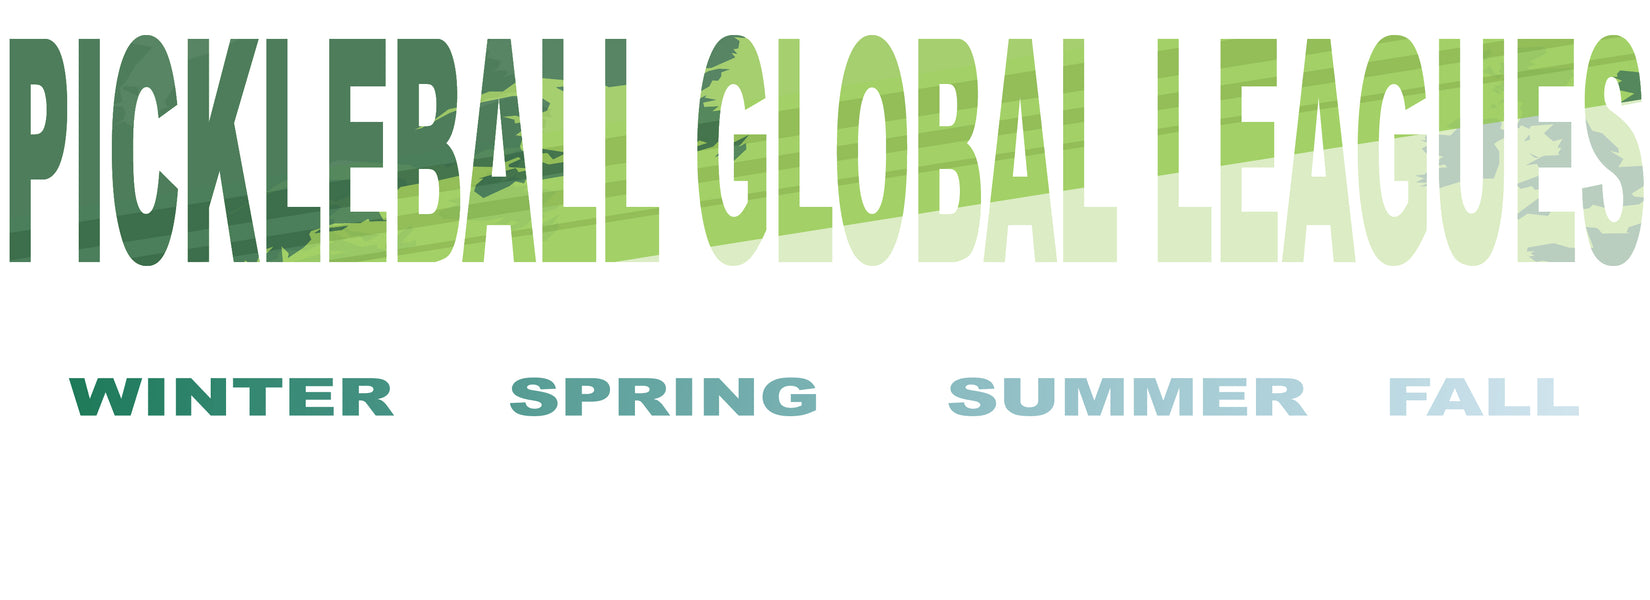 Pickleball Global Leagues - Winter Spring Summer Fall